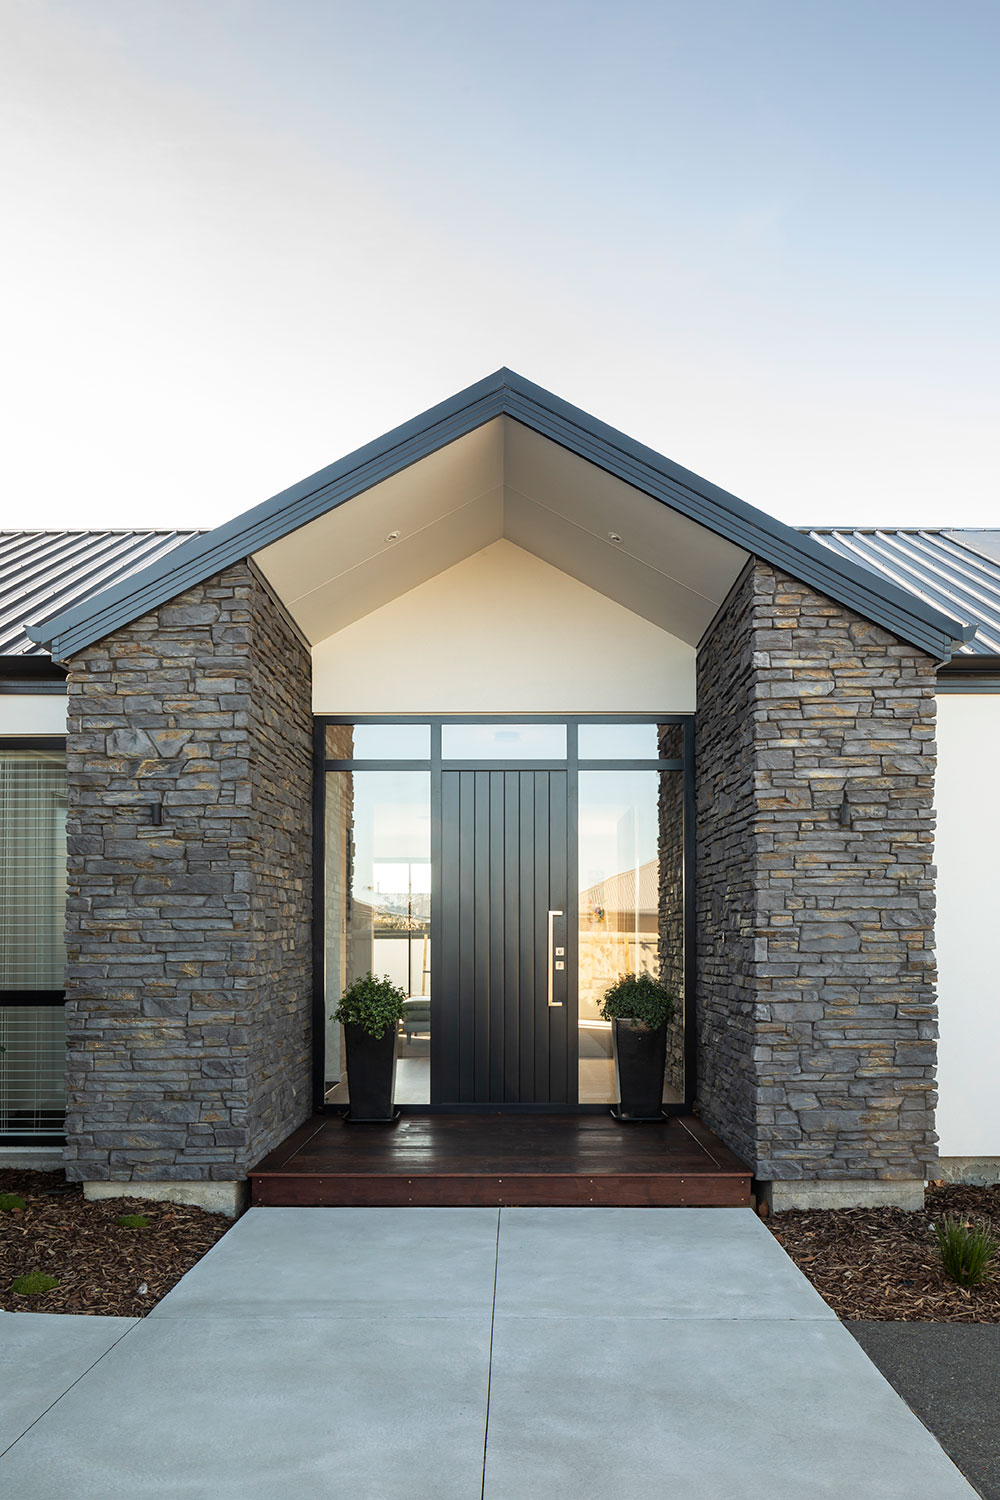 https://www.benchmarkhomes.co.nz/wp-content/uploads/2021/06/Projects-May-91500-x-1000-High-Res.jpg